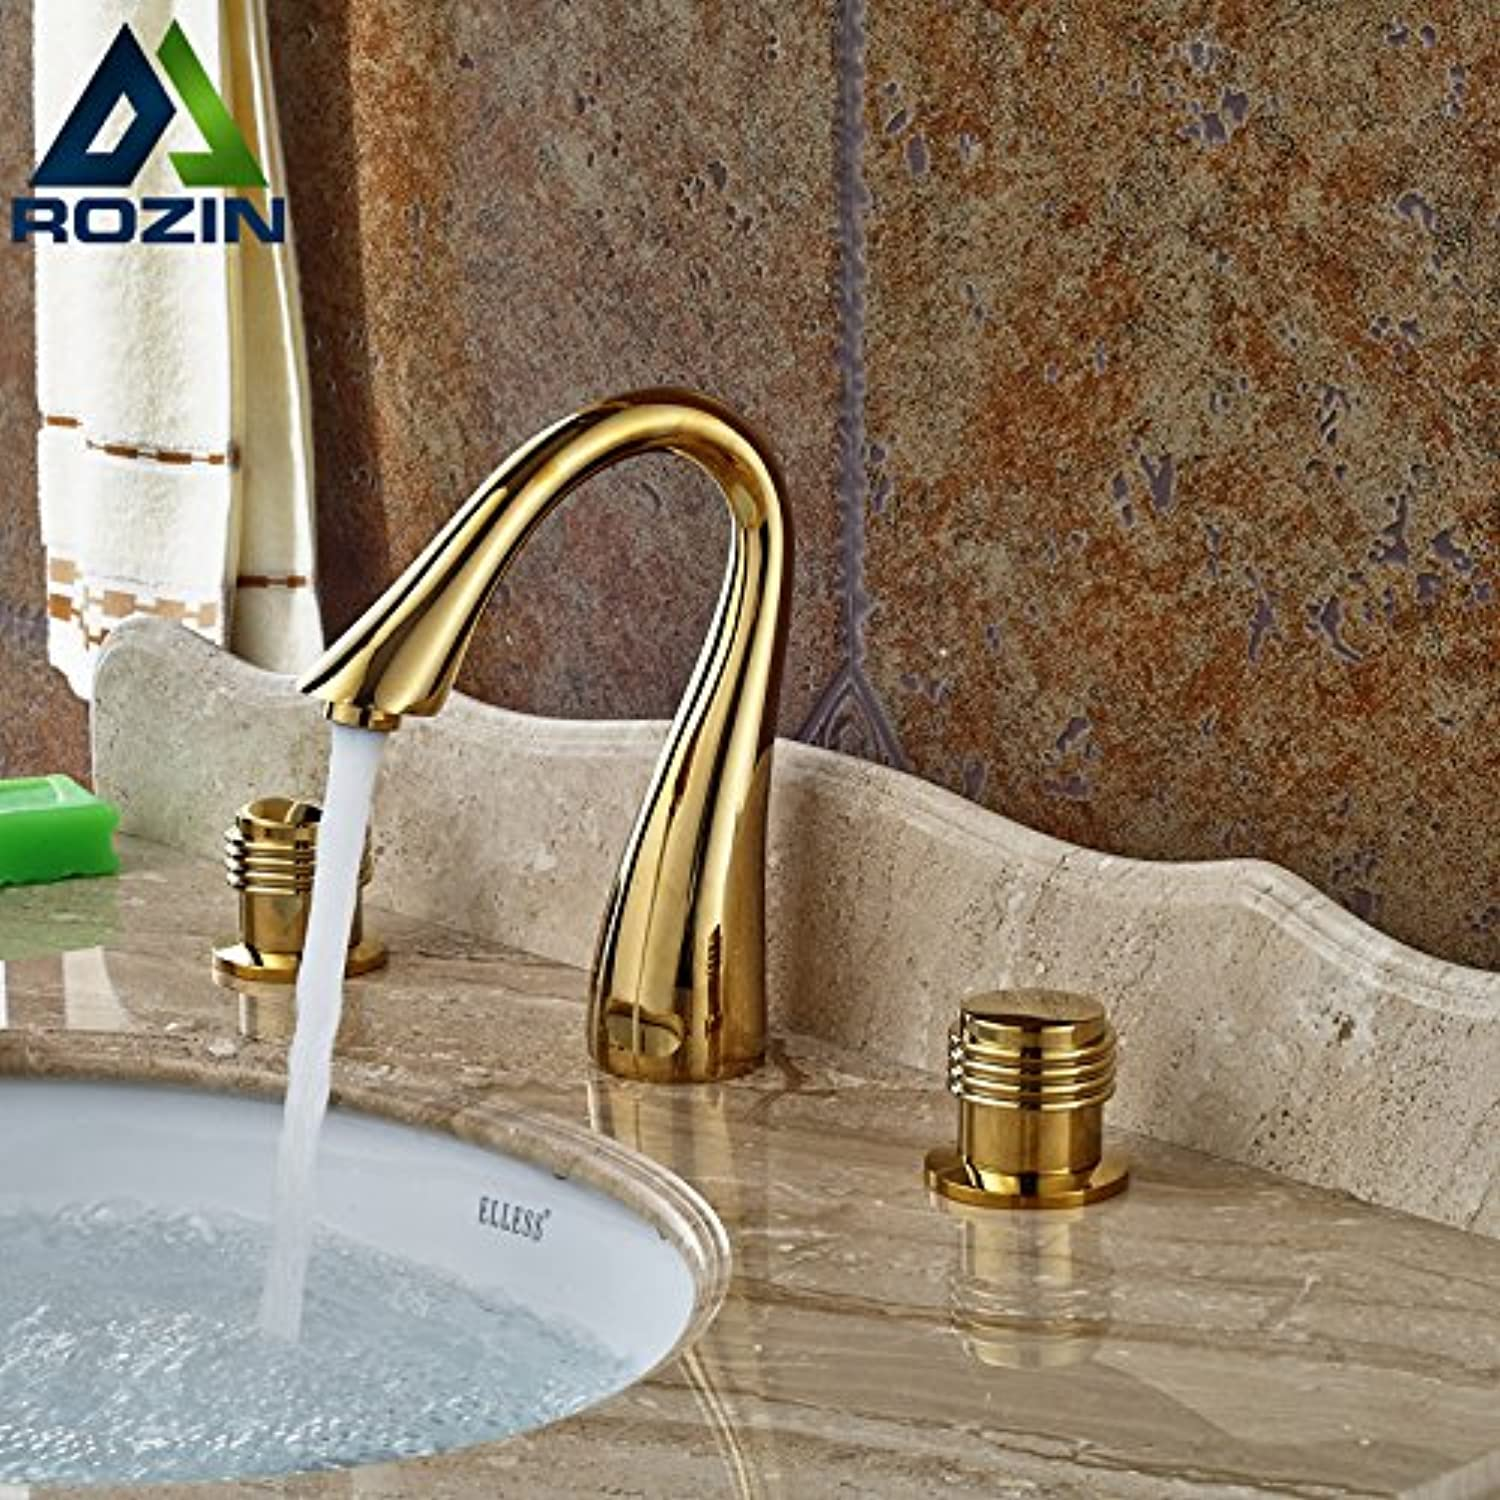 Maifeini Faucet, Faucet, Faucet, Faucet, Faucet, Faucet New Part Brass gold Basin Mixer Deck Install Dual Handles Bathroom Hot And Cold Mixer Taps